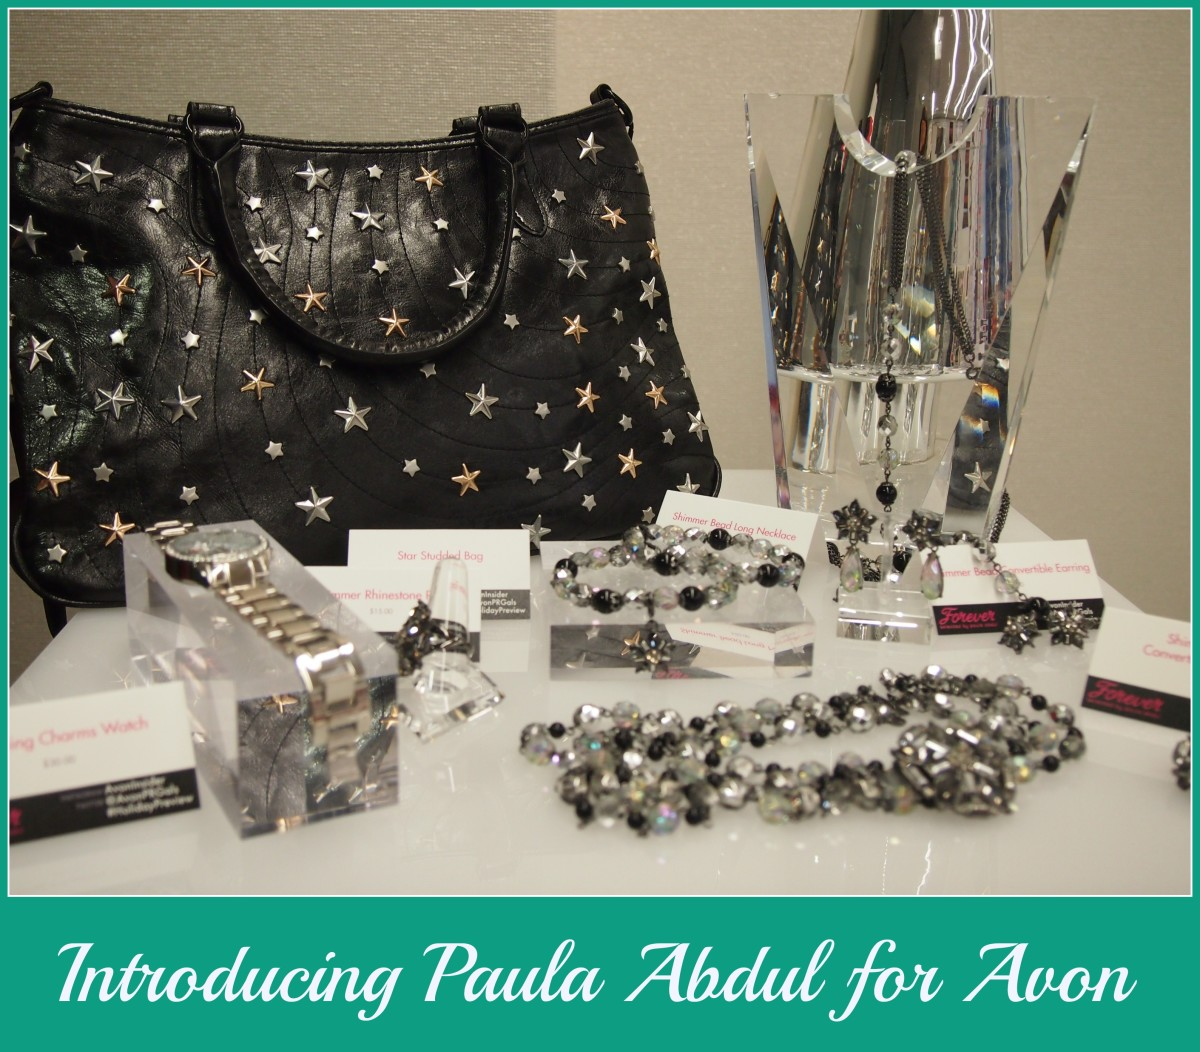 paula abdul for avon